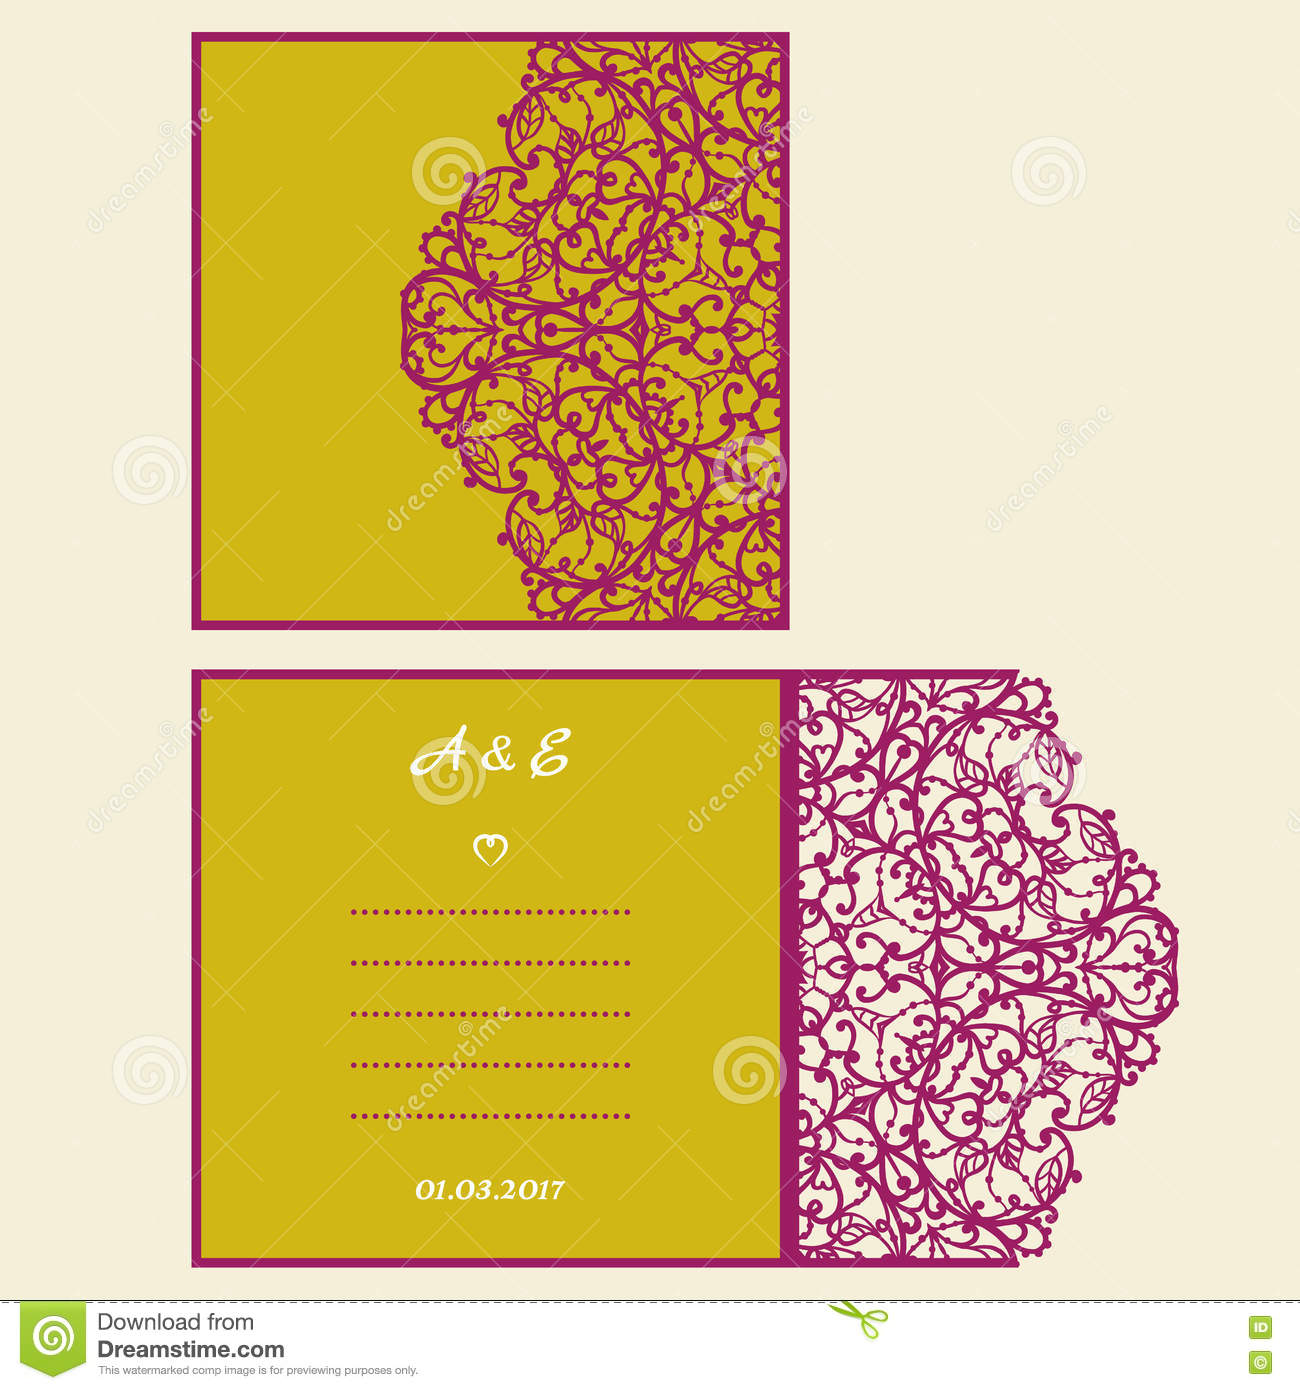 Wedding invitation or greeting card with abstract ornament. Vector envelope template for laser cutting. Paper cut card